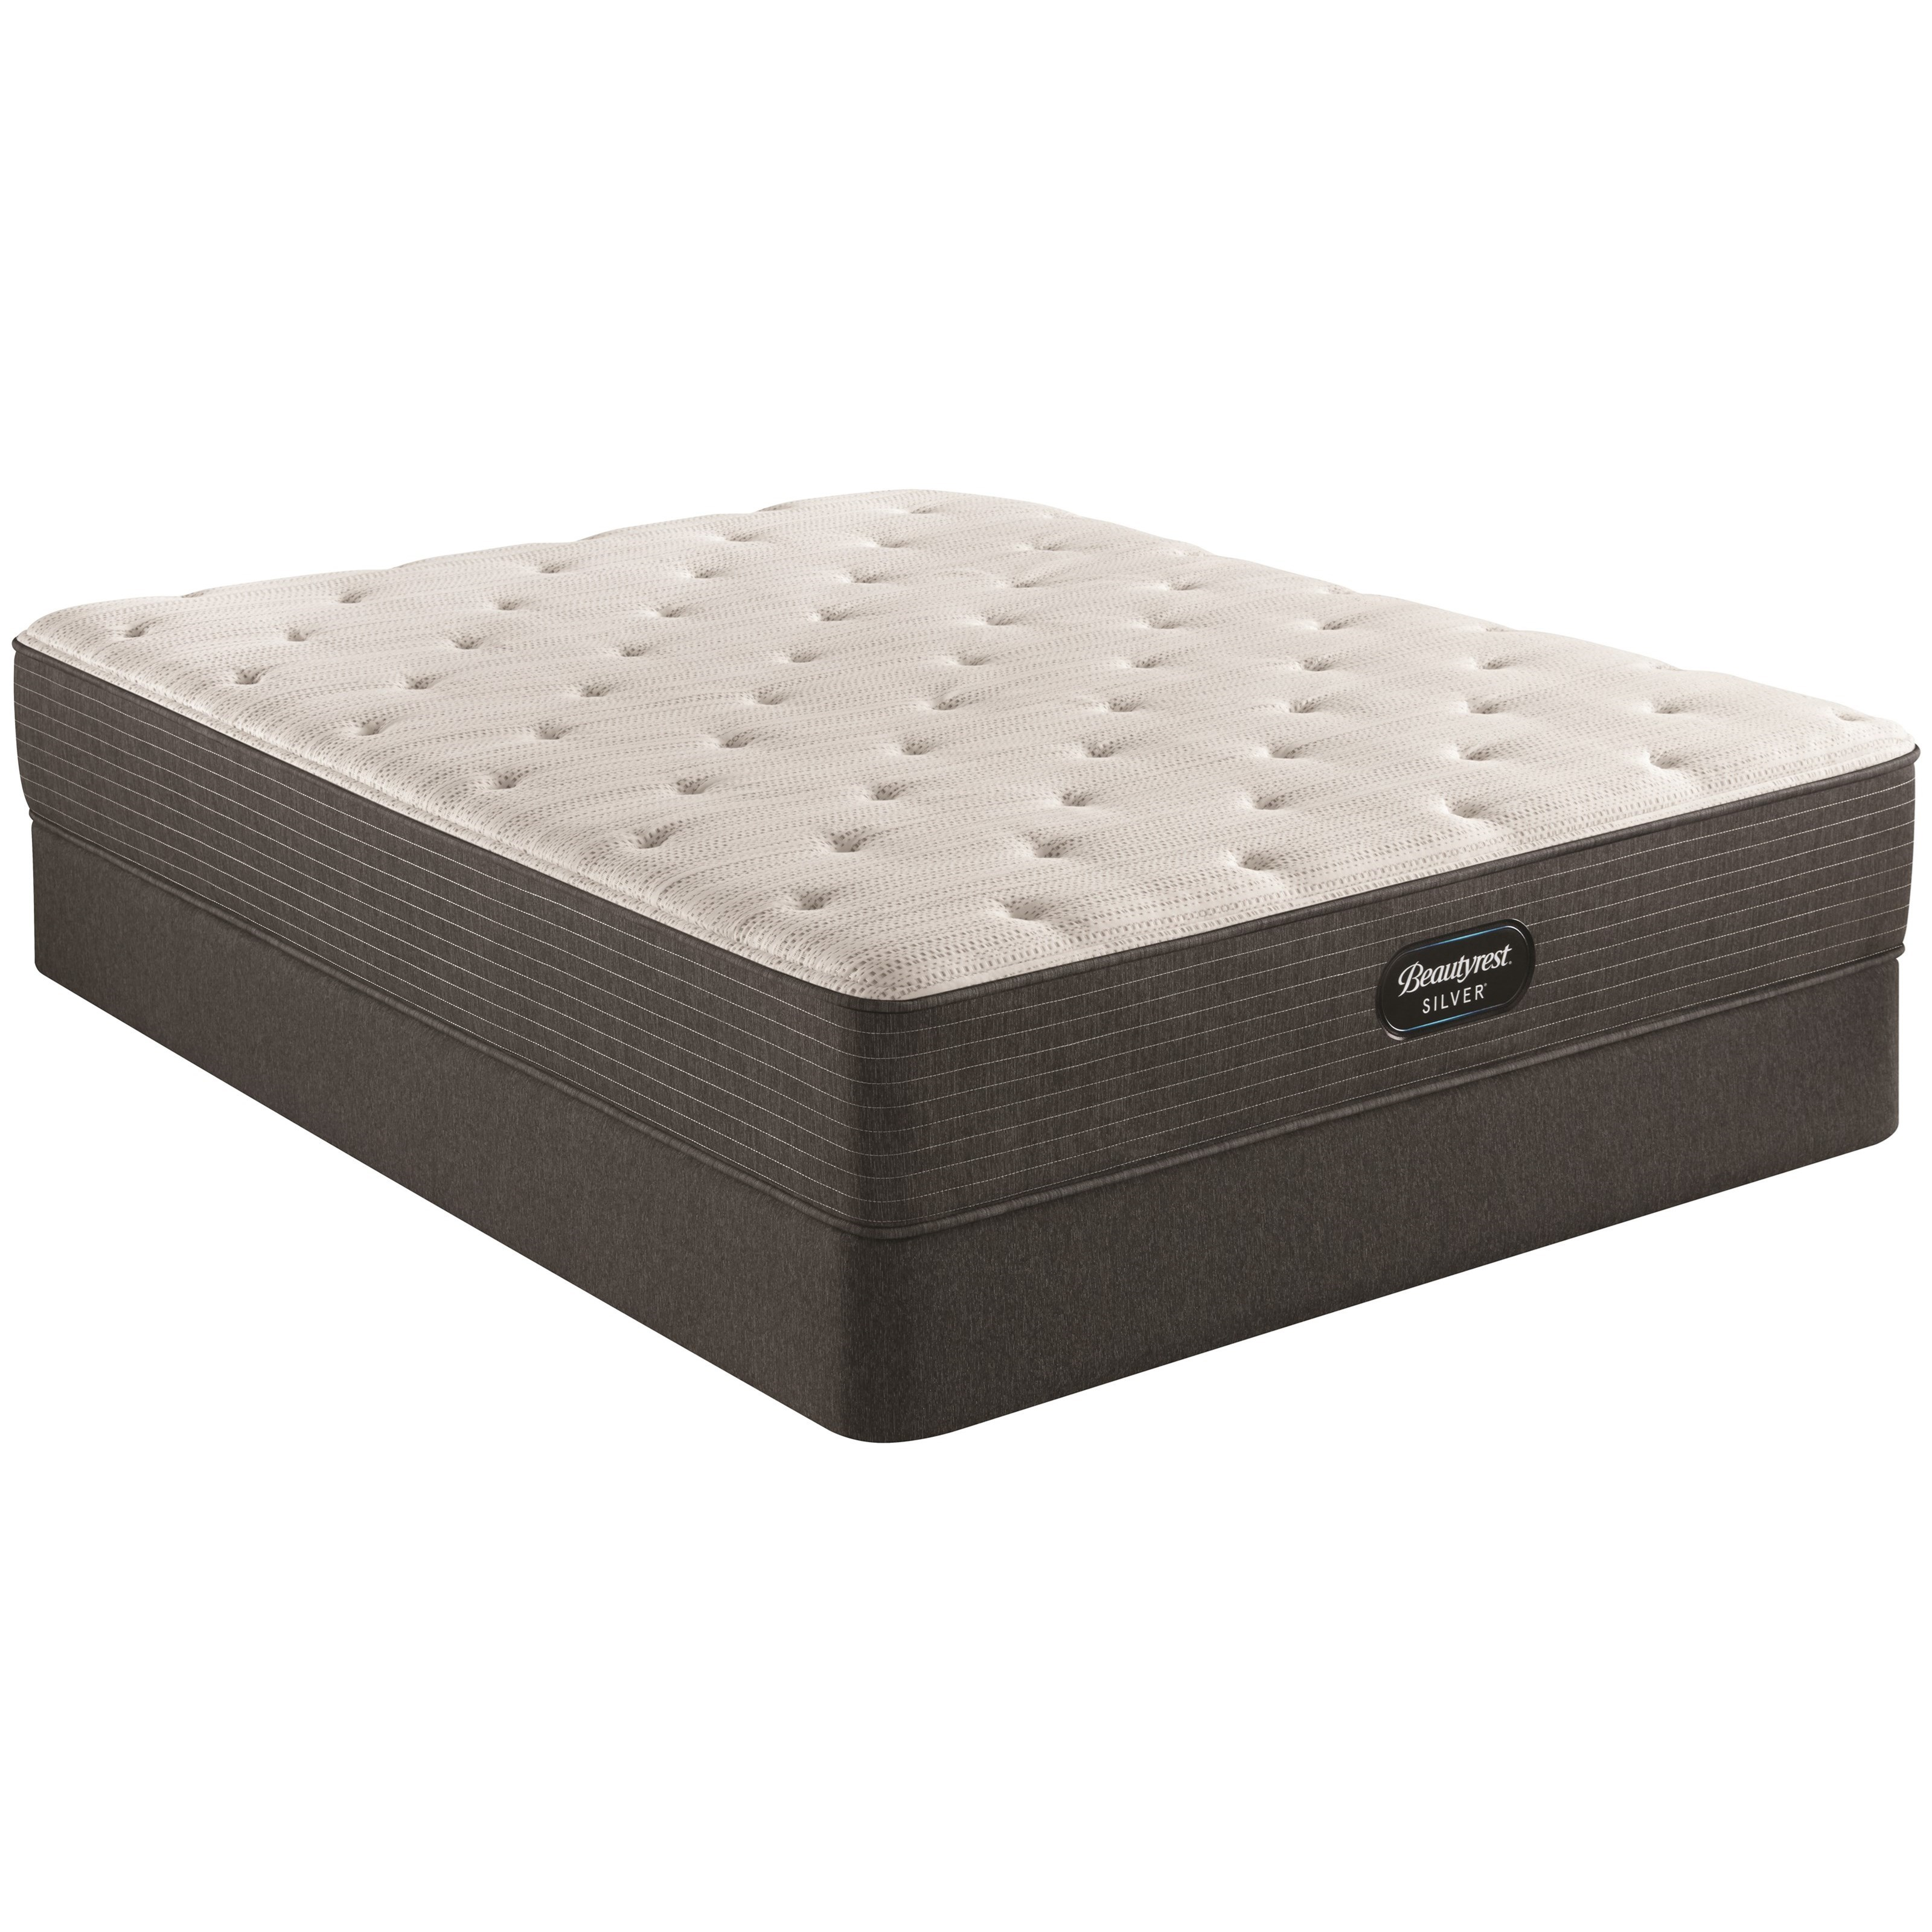 "BRS900 Plush Cal King 12"" Pocketed Coil Mattress Set by Beautyrest at HomeWorld Furniture"